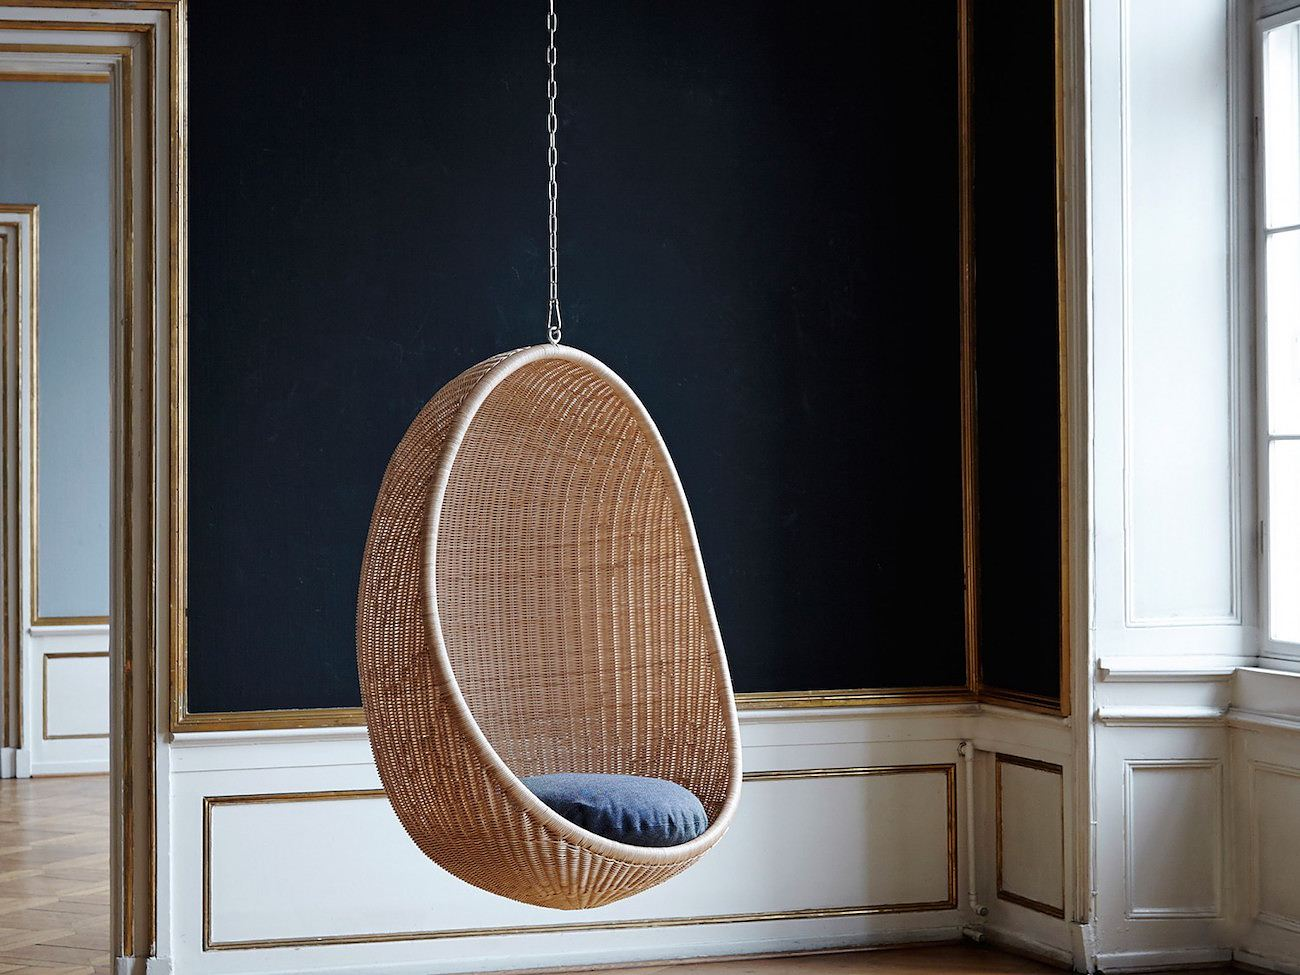 Egg Chair by Nanna Ditzel